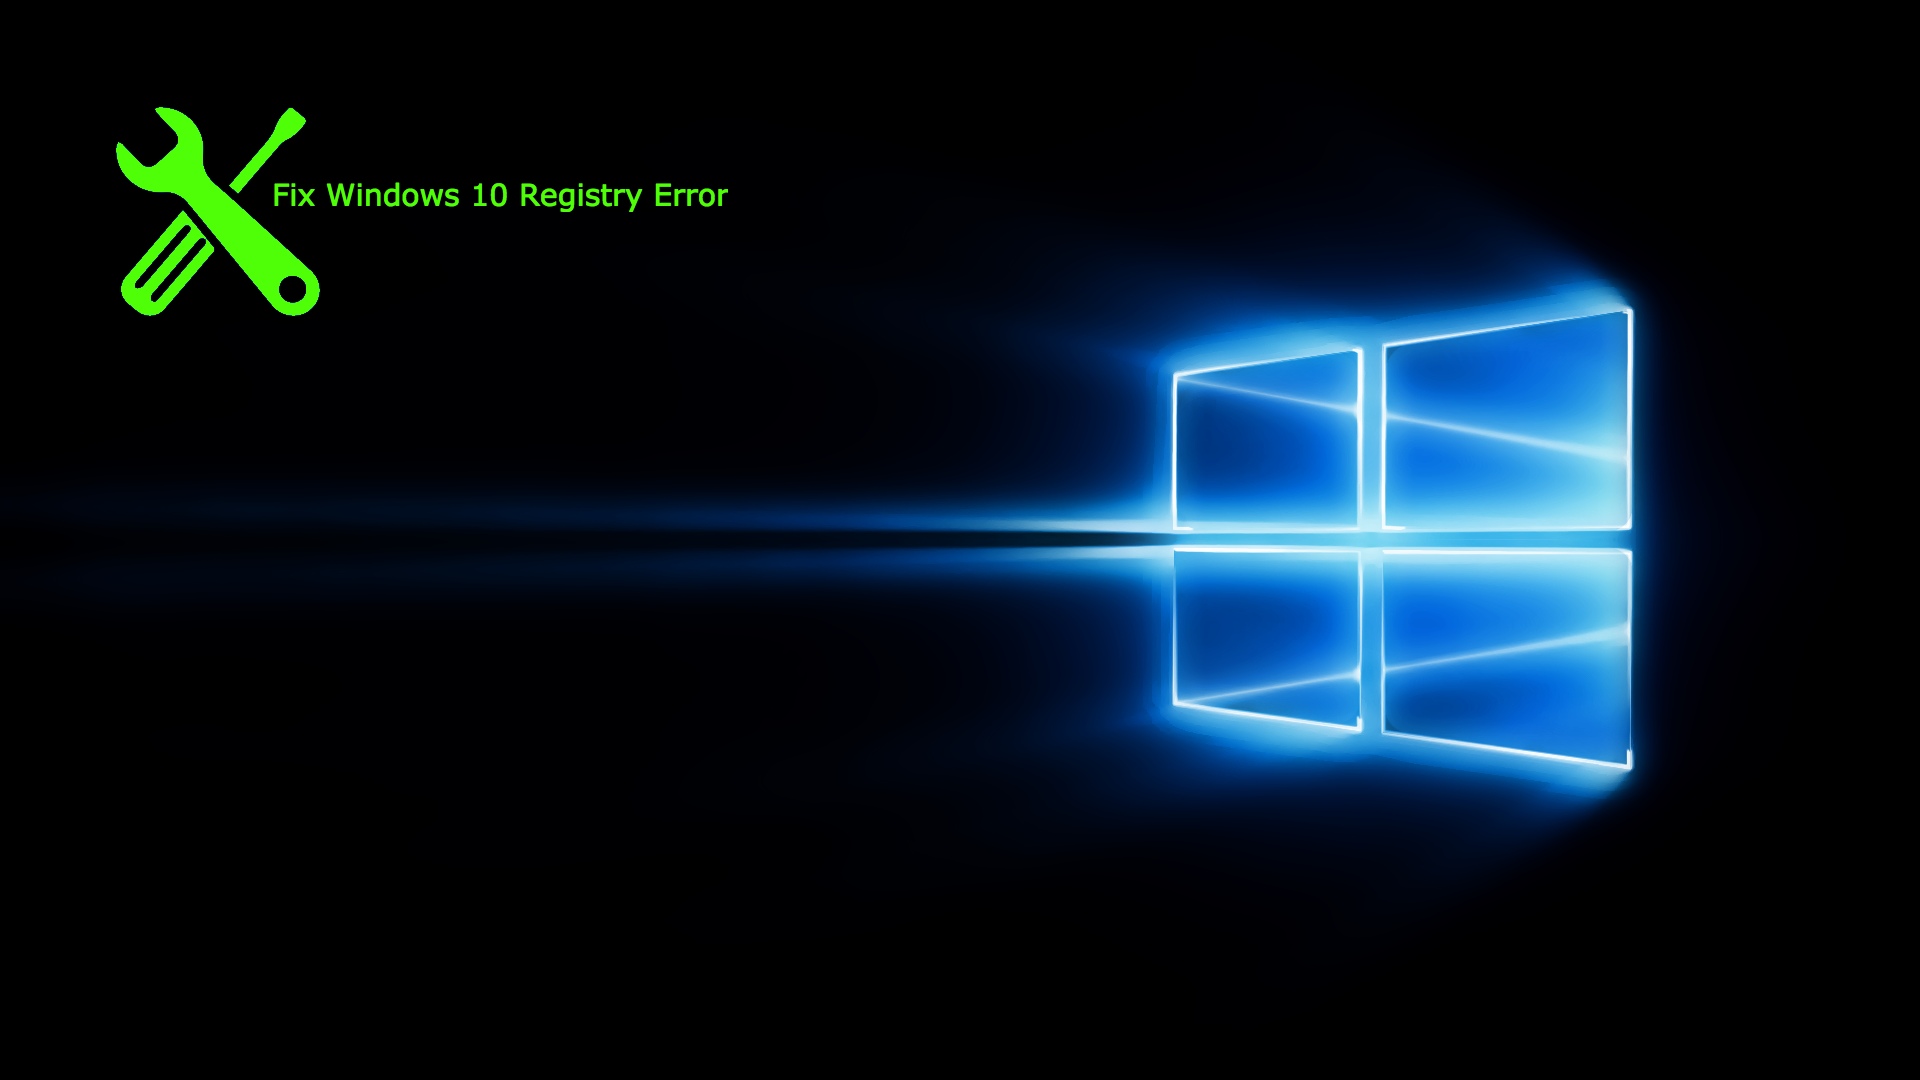 desktop background windows xp registry how to fix or repair corrupted windows 10 registry issues